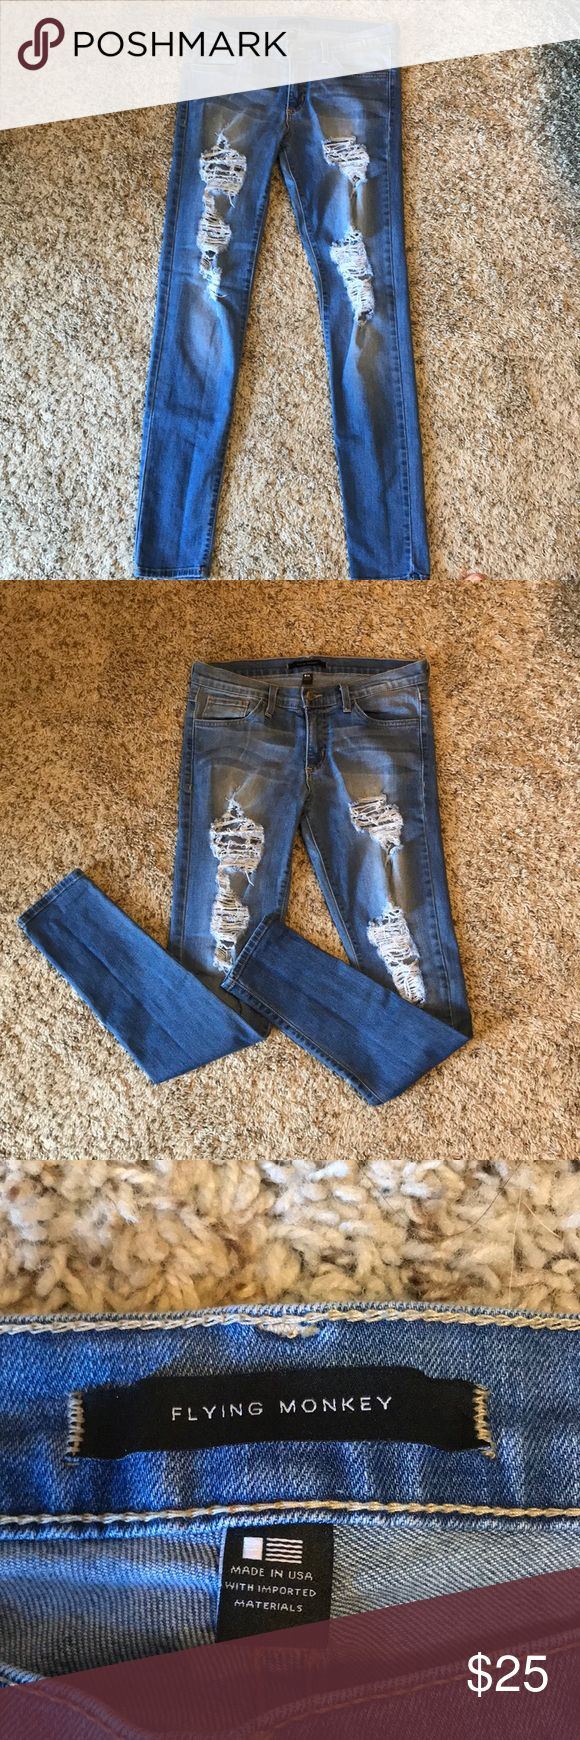 Flying Monkey jeans Cute, distressed flying monkey jeans! Size 28 and in great condition! Very comfortable and perfect for spring or any season! flying monkey Jeans Skinny